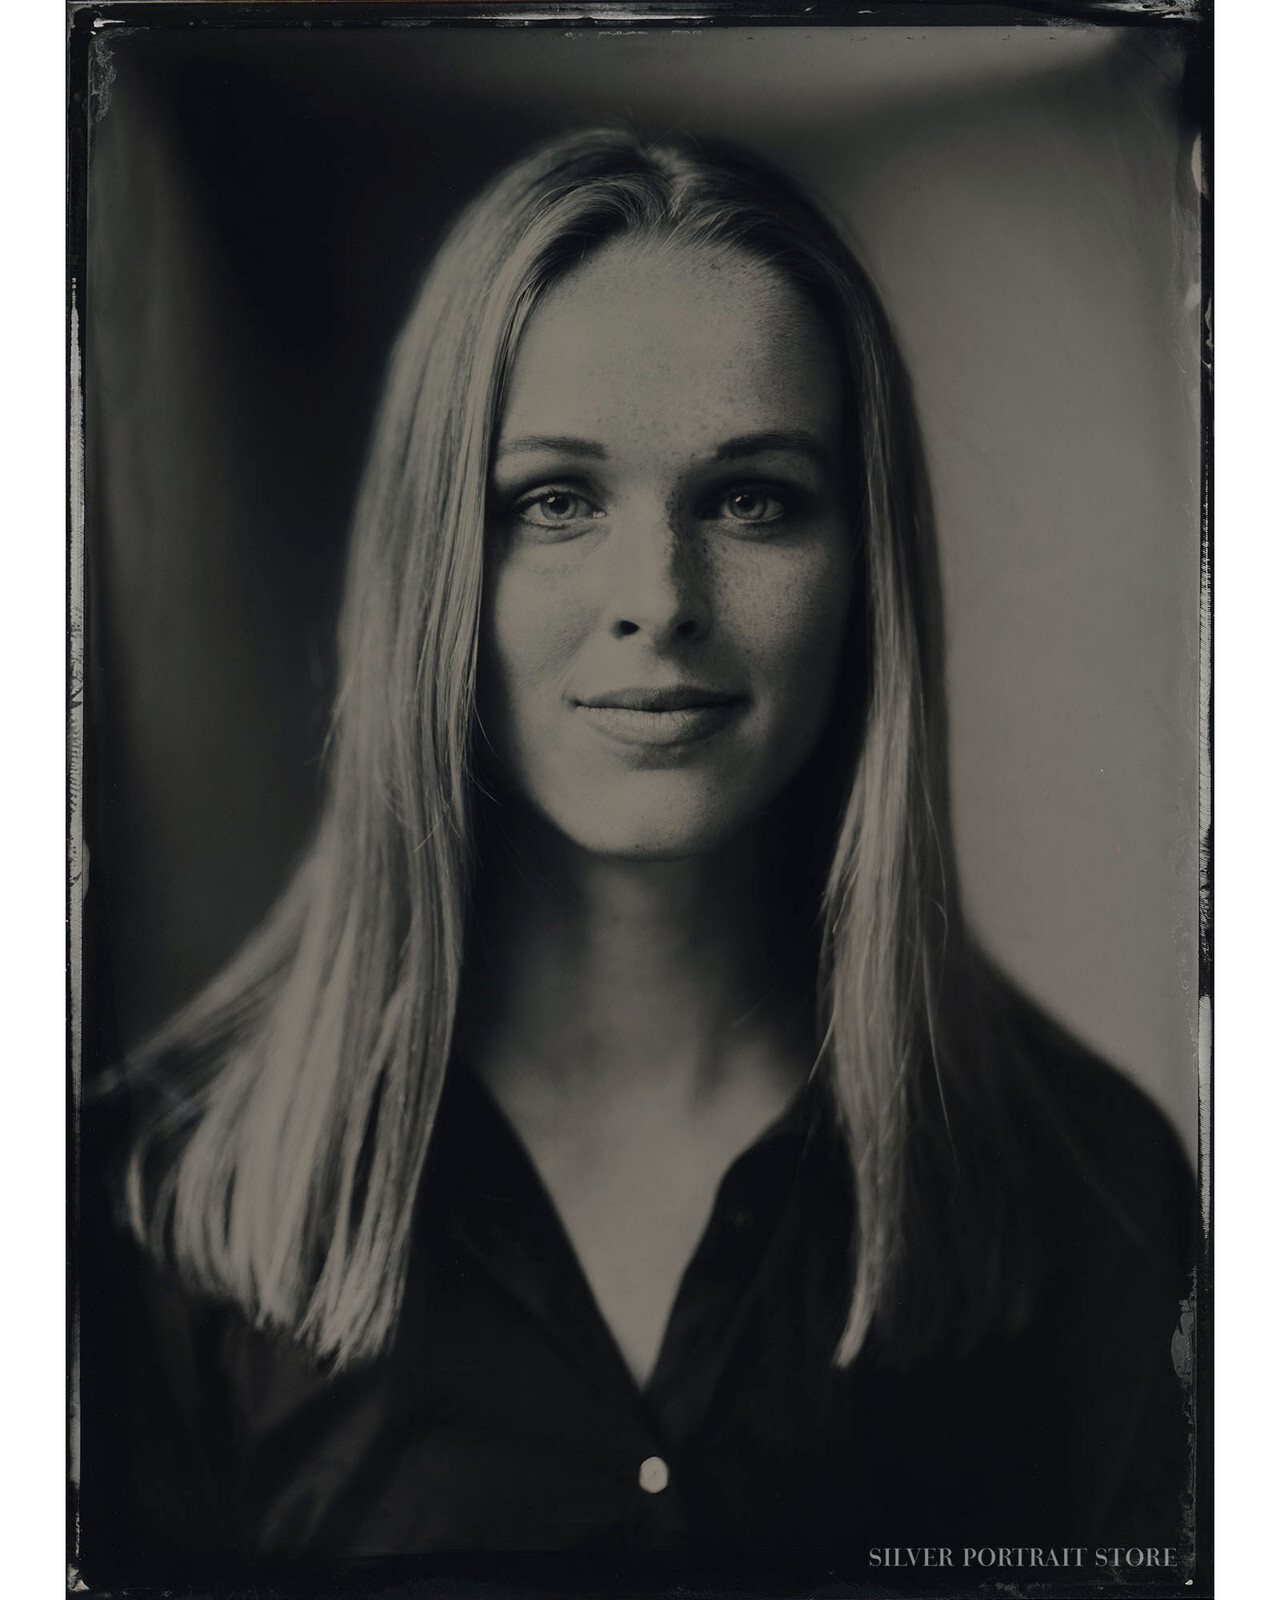 Pien-Silver Portrait Store-scan from Wet plate collodion-Tintype 13 x 18 cm.